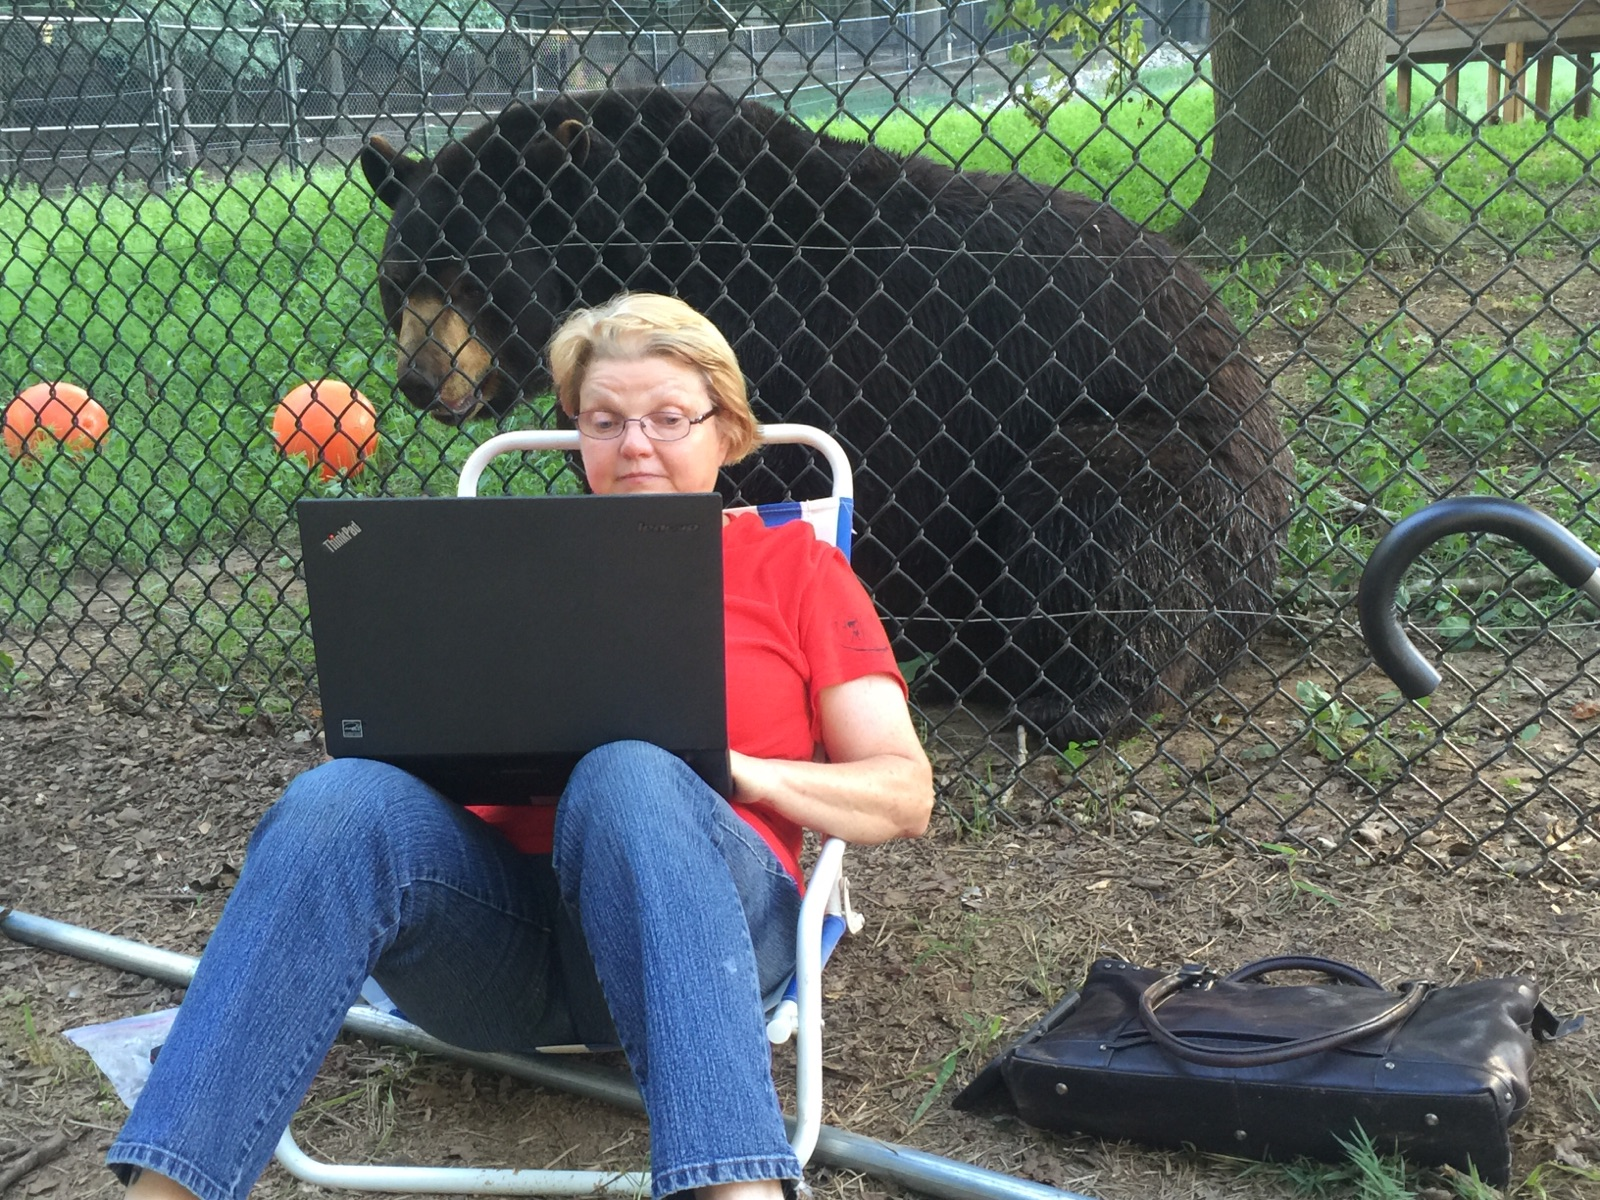 Rit's daughter's PenPal sitting in front of a bear, while working on a laptop.